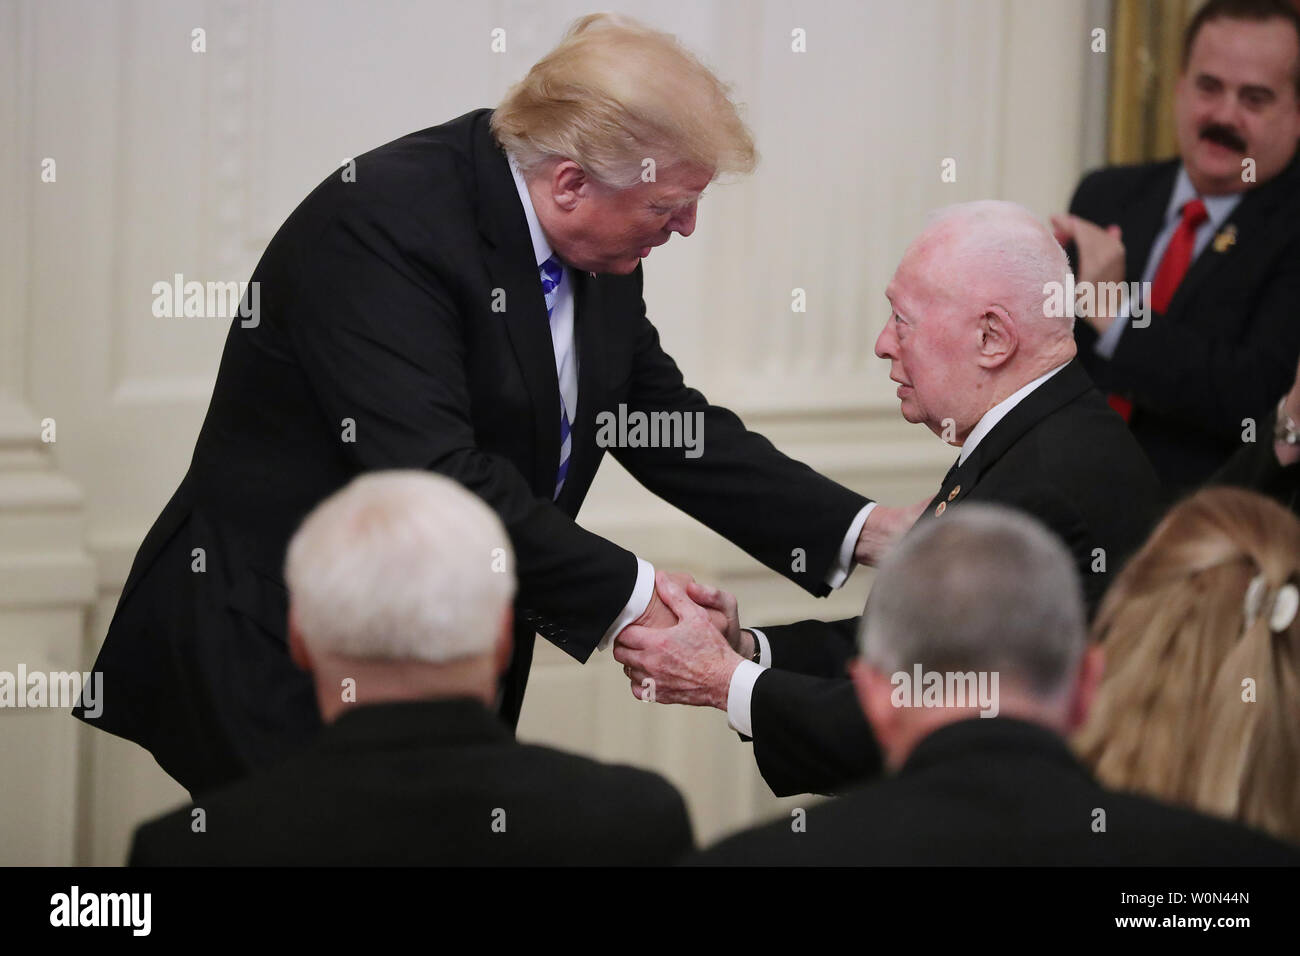 U.S. President Donald Trump shakes hands with former Commandant of the Marine Corps retired Gen. Alfred Gray while commemorating the 35th anniversary of attack on the Beirut Barracks in the East Room of the White House October 25, 2018 in Washington, DC. On October 23, 1983 two truck bombs struck the buildings housing Multinational Force in Lebanon (MNF) peacekeepers, killing 241 U.S. and 58 French peacekeepers and 6 civilians.     Photo by Chip Somodevilla/UPI Stock Photo